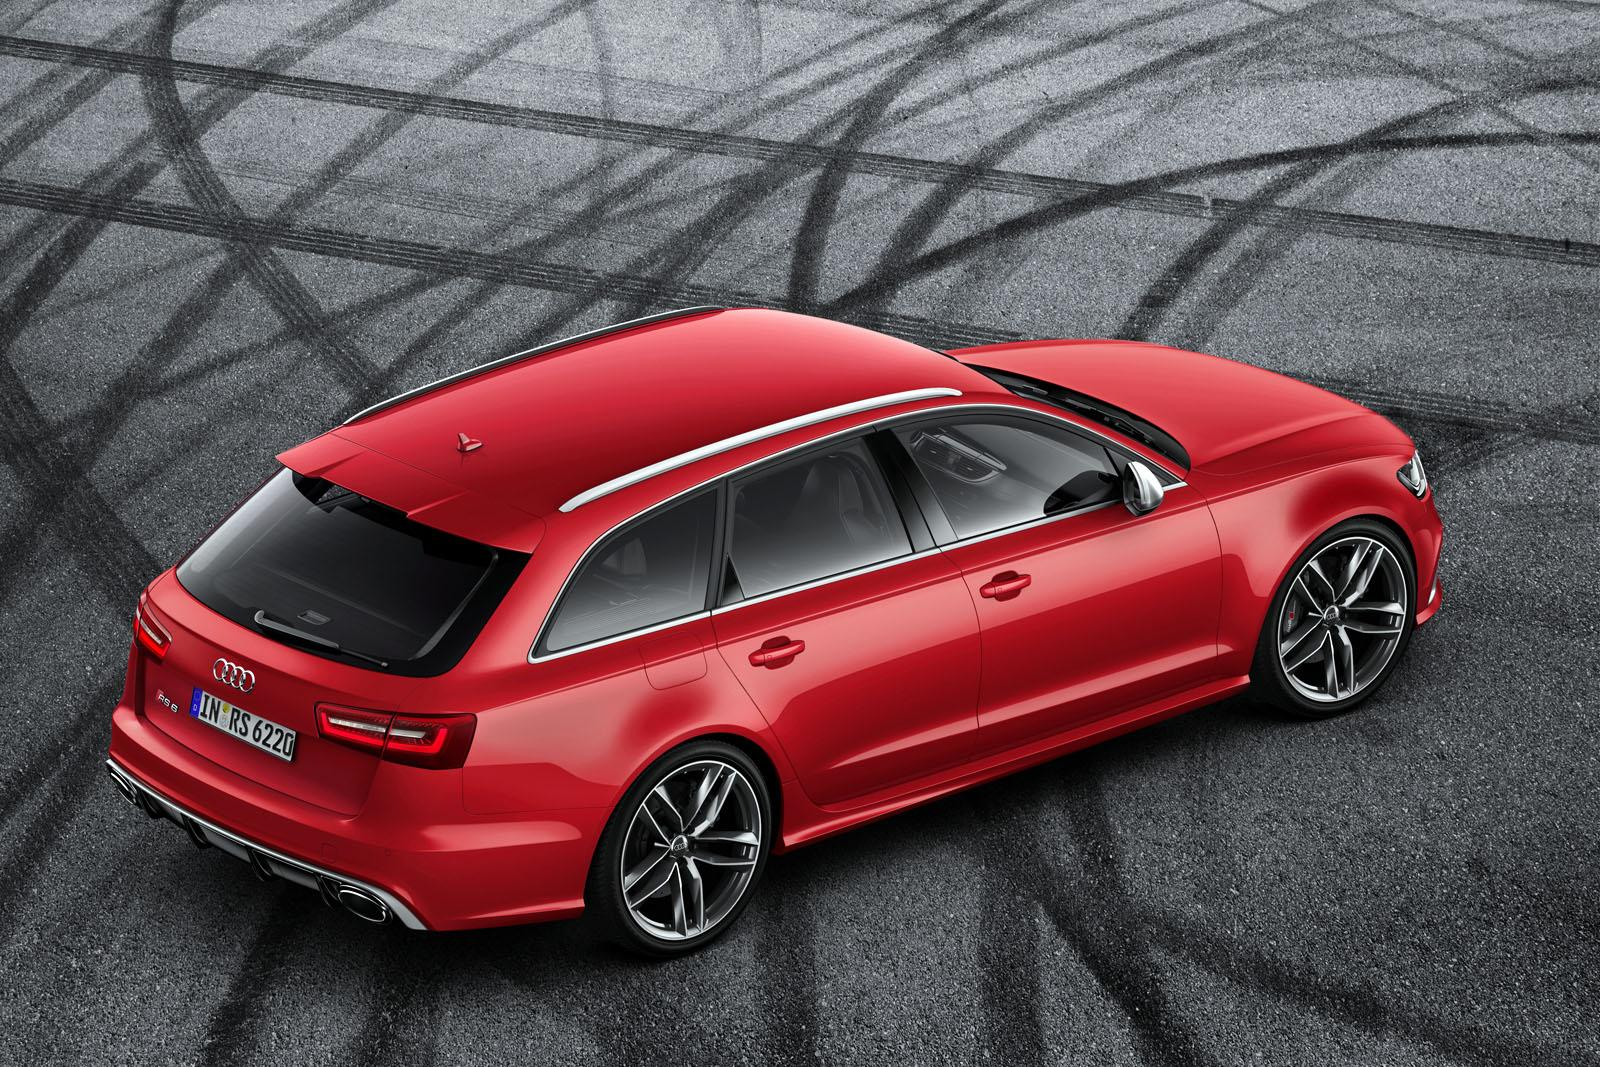 2014 audi rs6 avant 05 Audi has no plans to offer 2014 RS6 Avant in the US